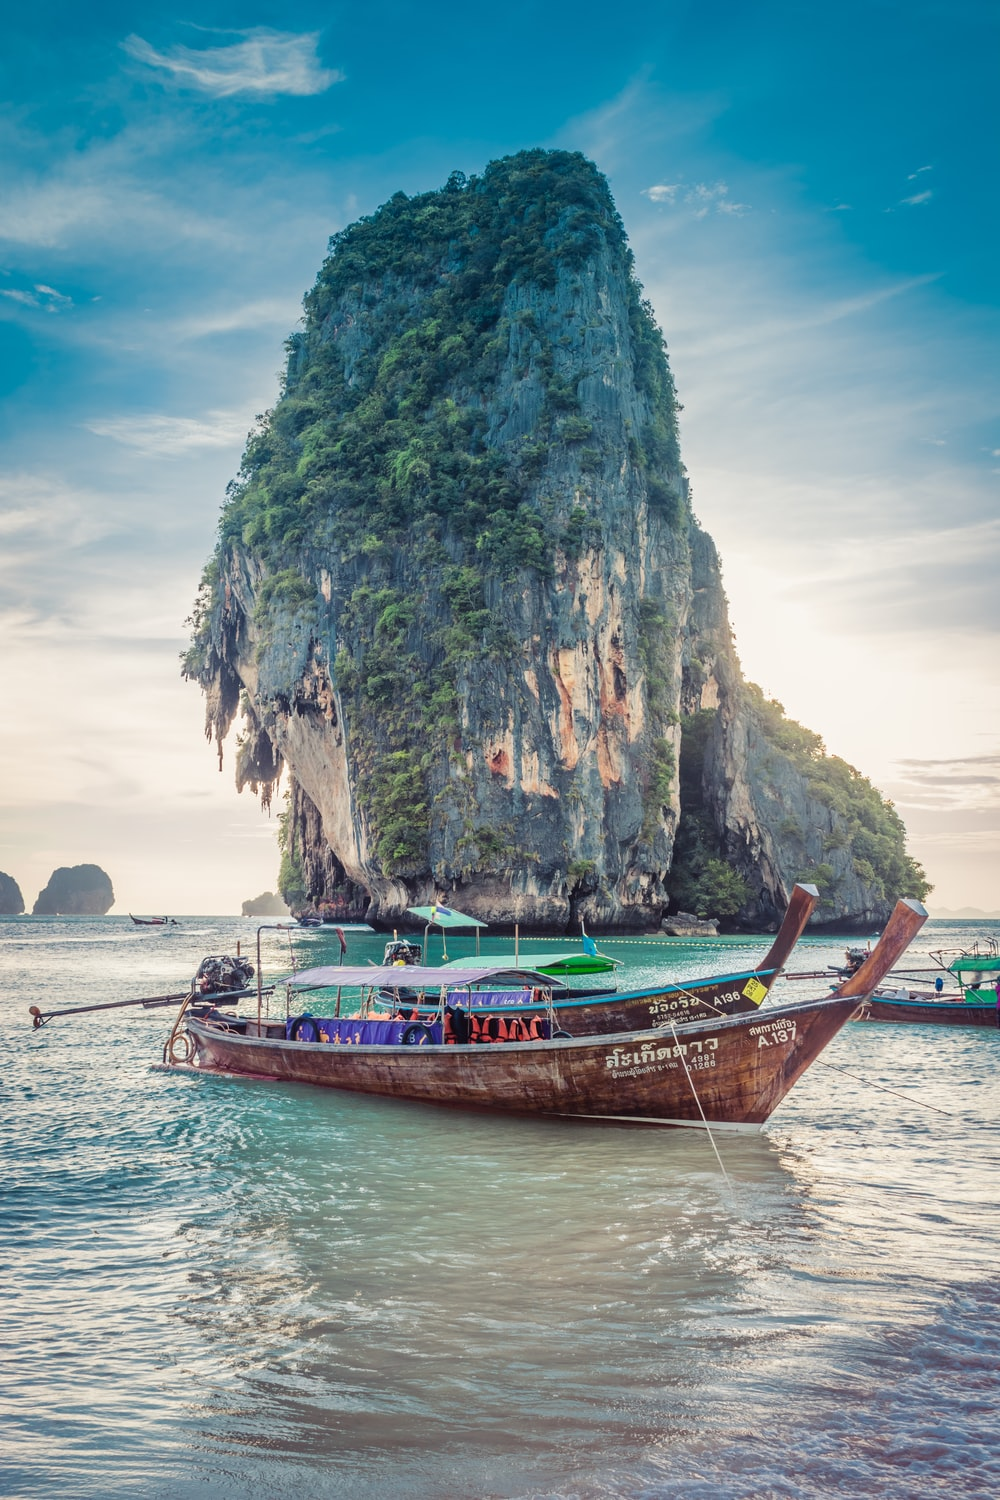 Thailand Travel CDC - What You Need To Know?